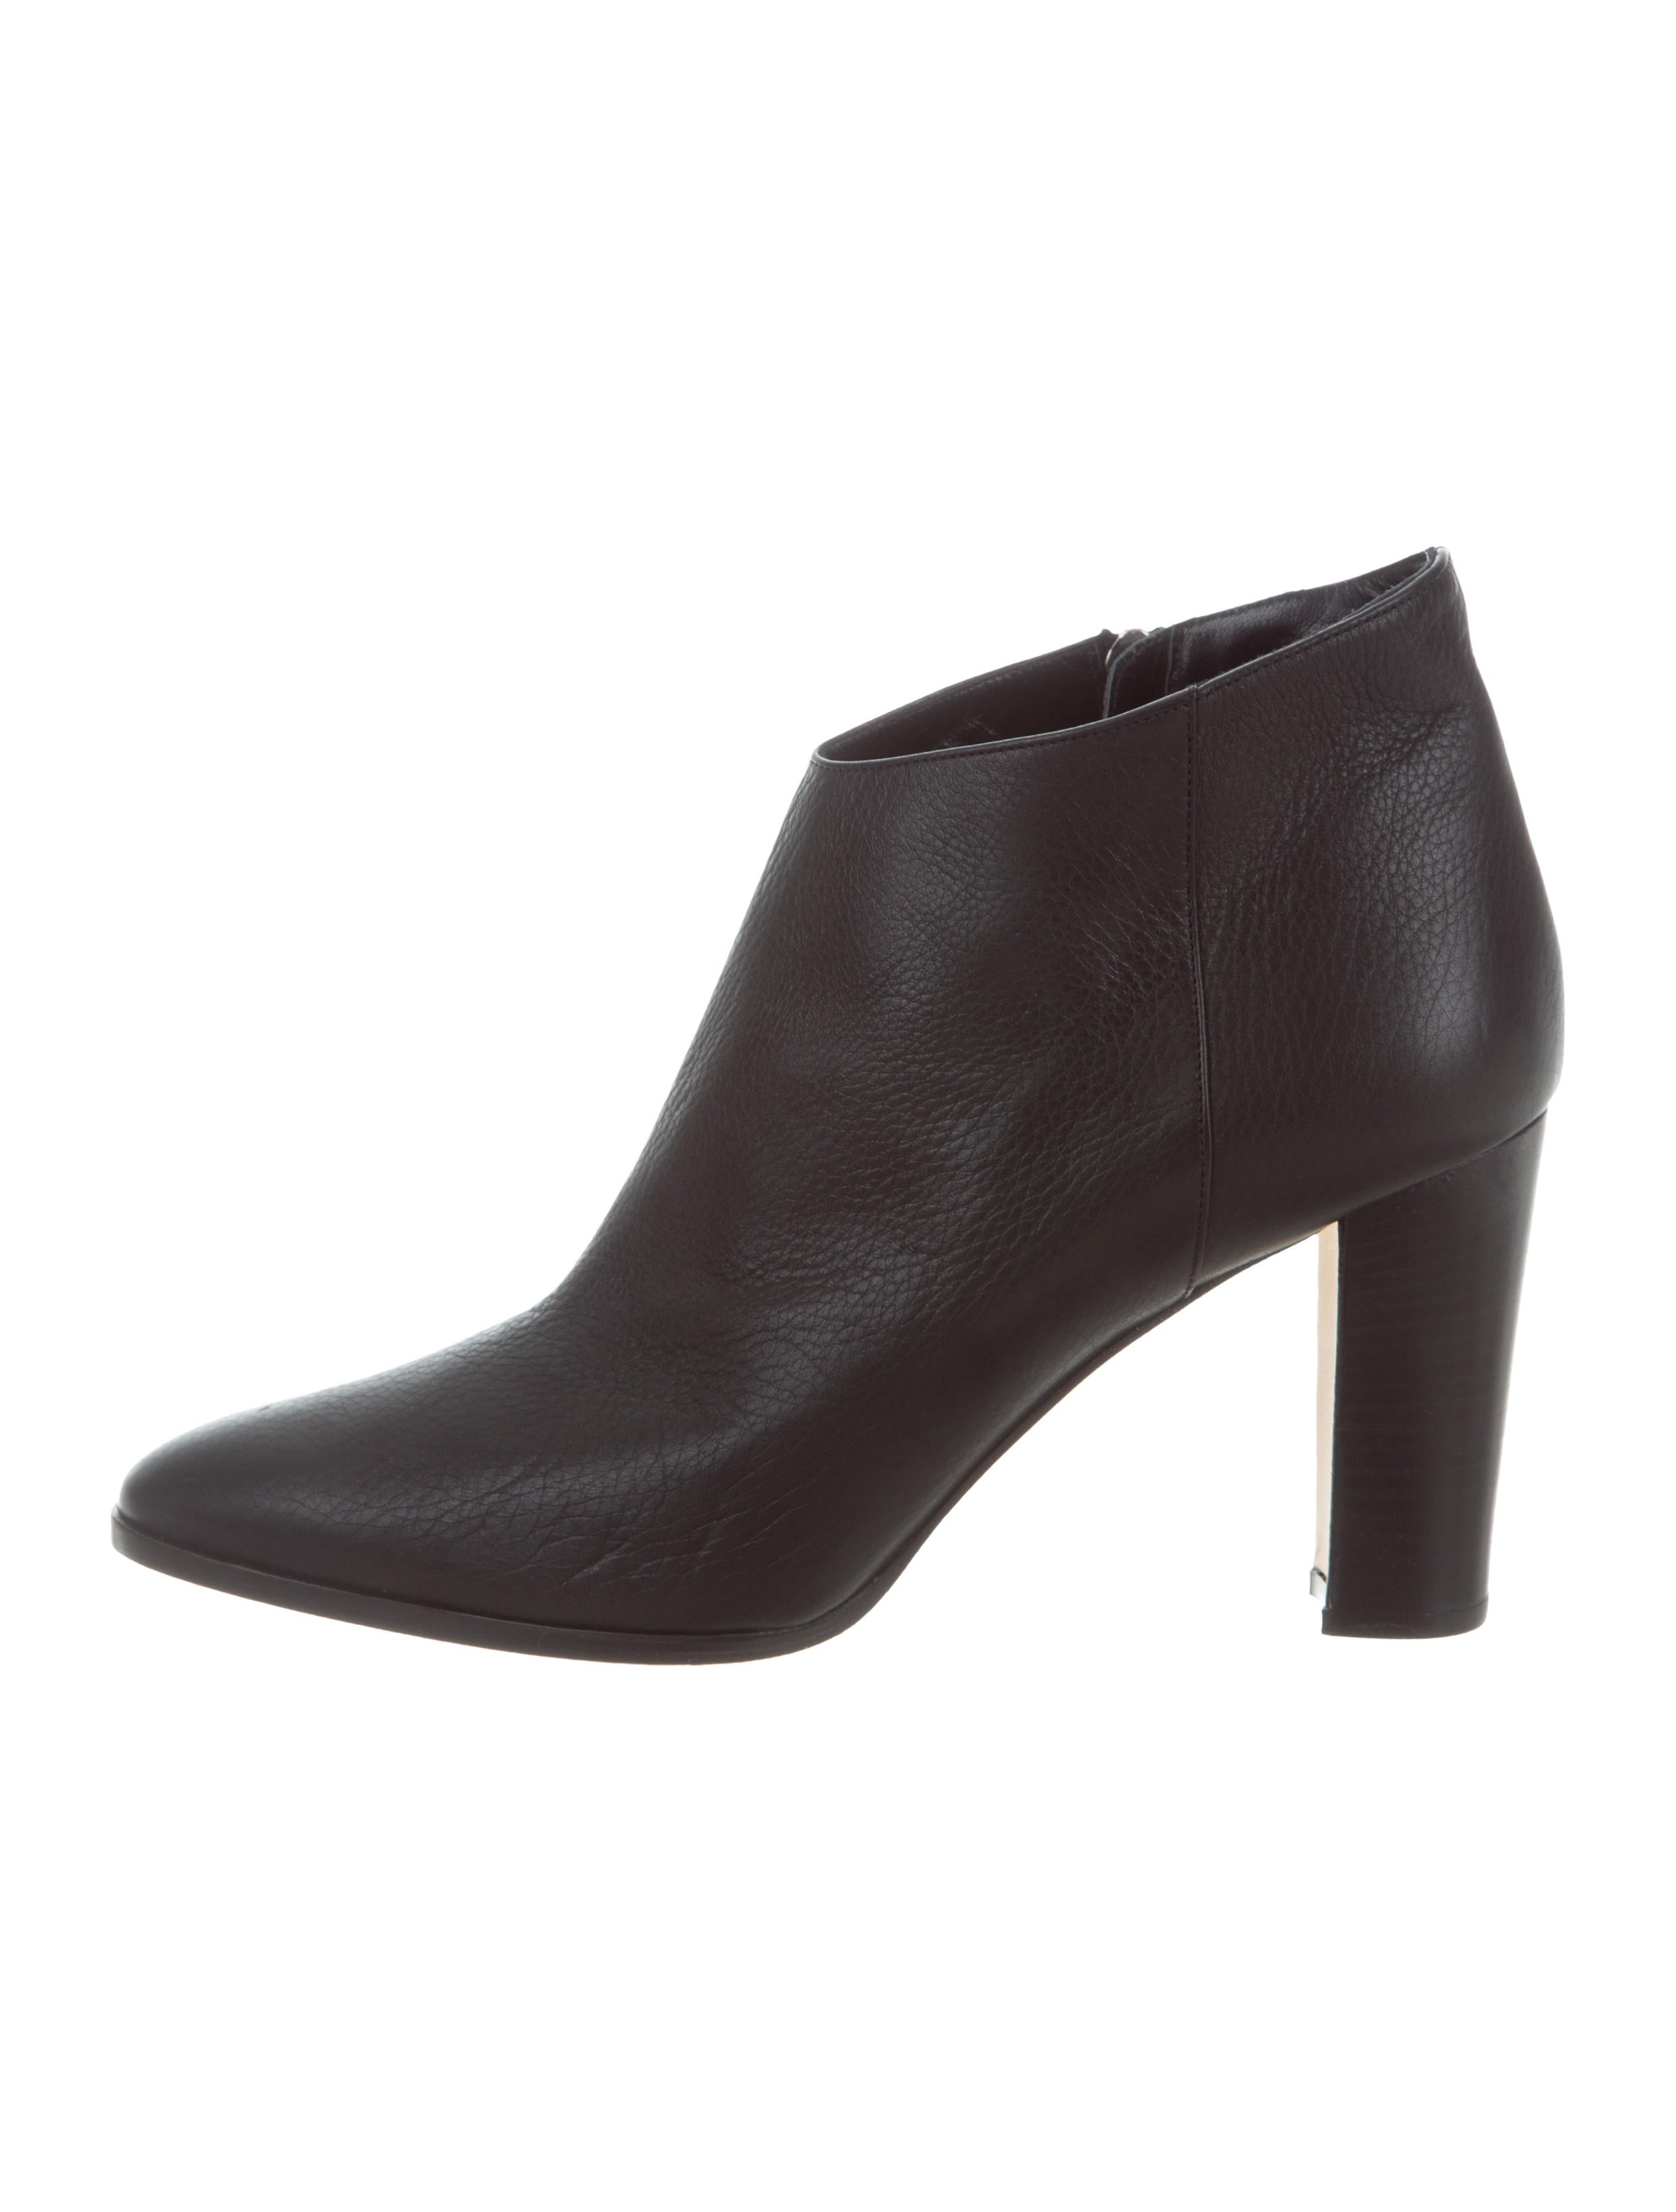 Red pre order eastbay Manolo Blahnik Brusta Ankle Boots w/ Tags 2014 sale online for nice for sale LPybj0S